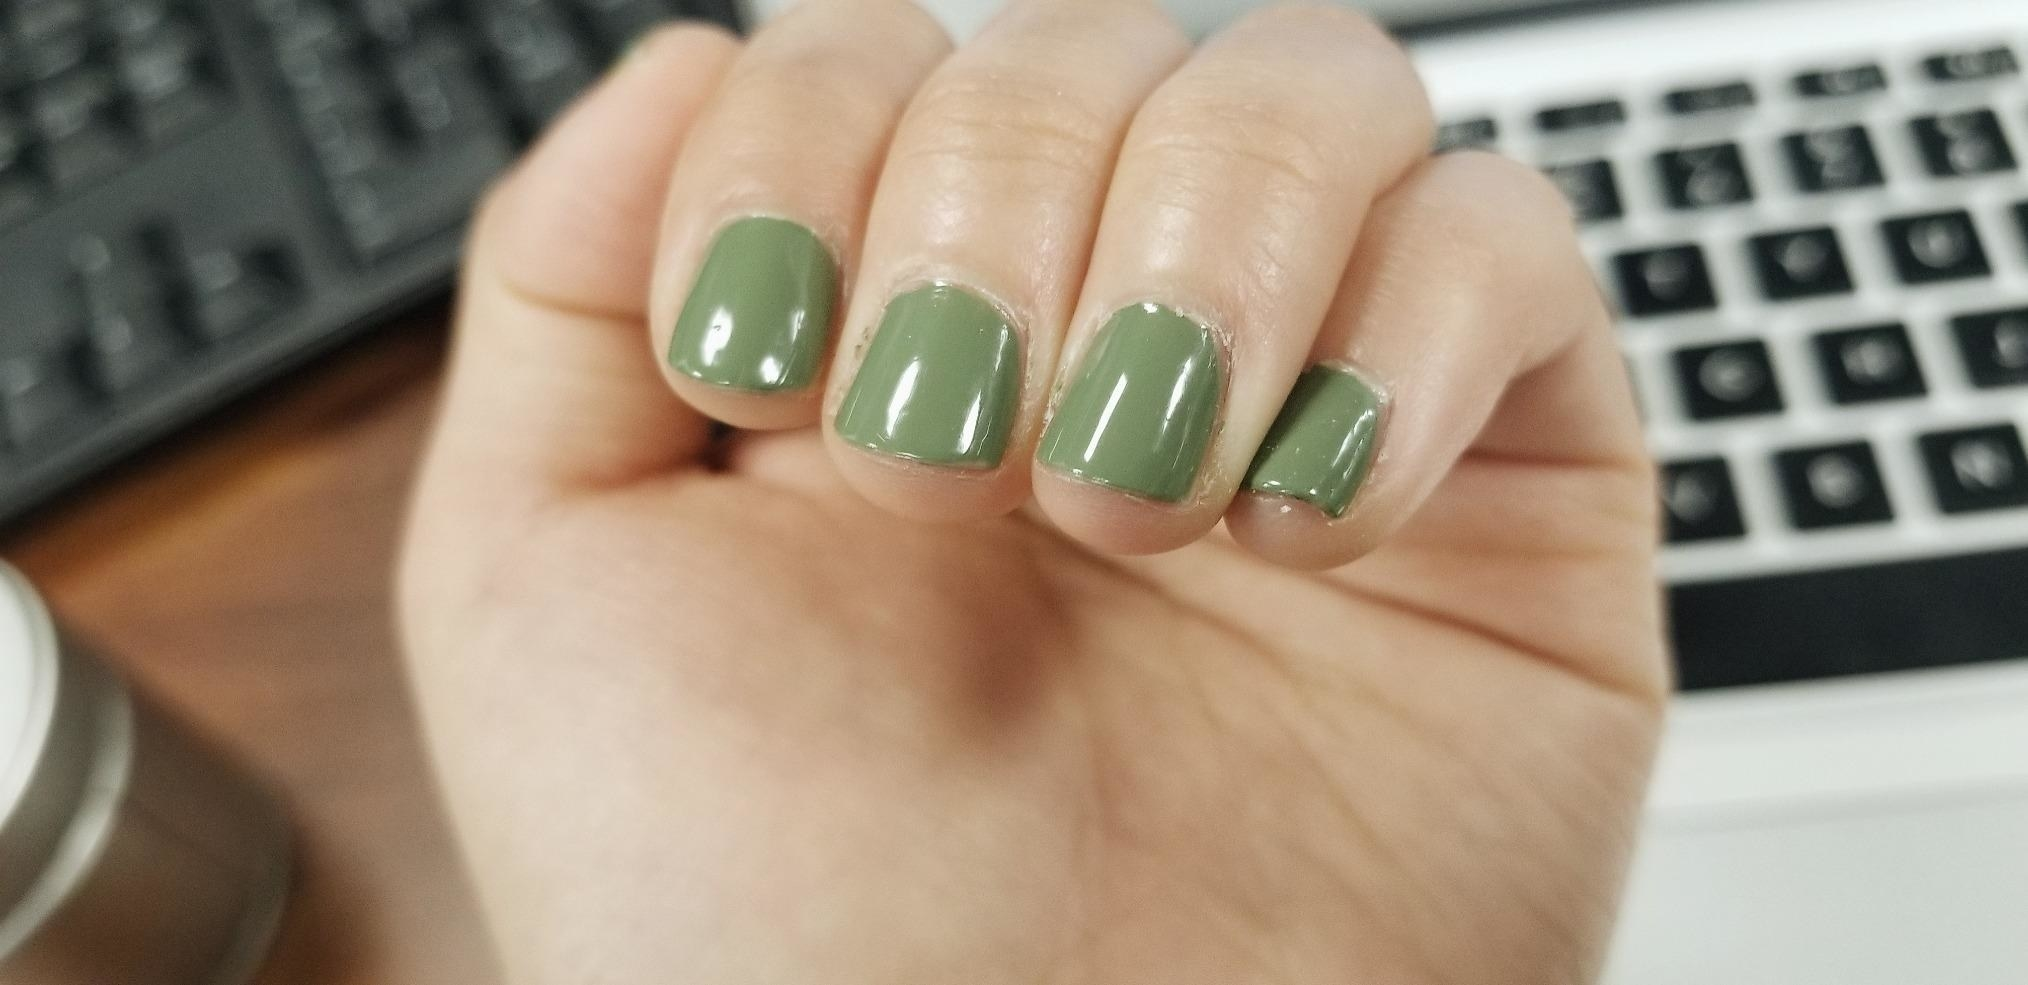 A reviewer showing their olive green nails looking shiny